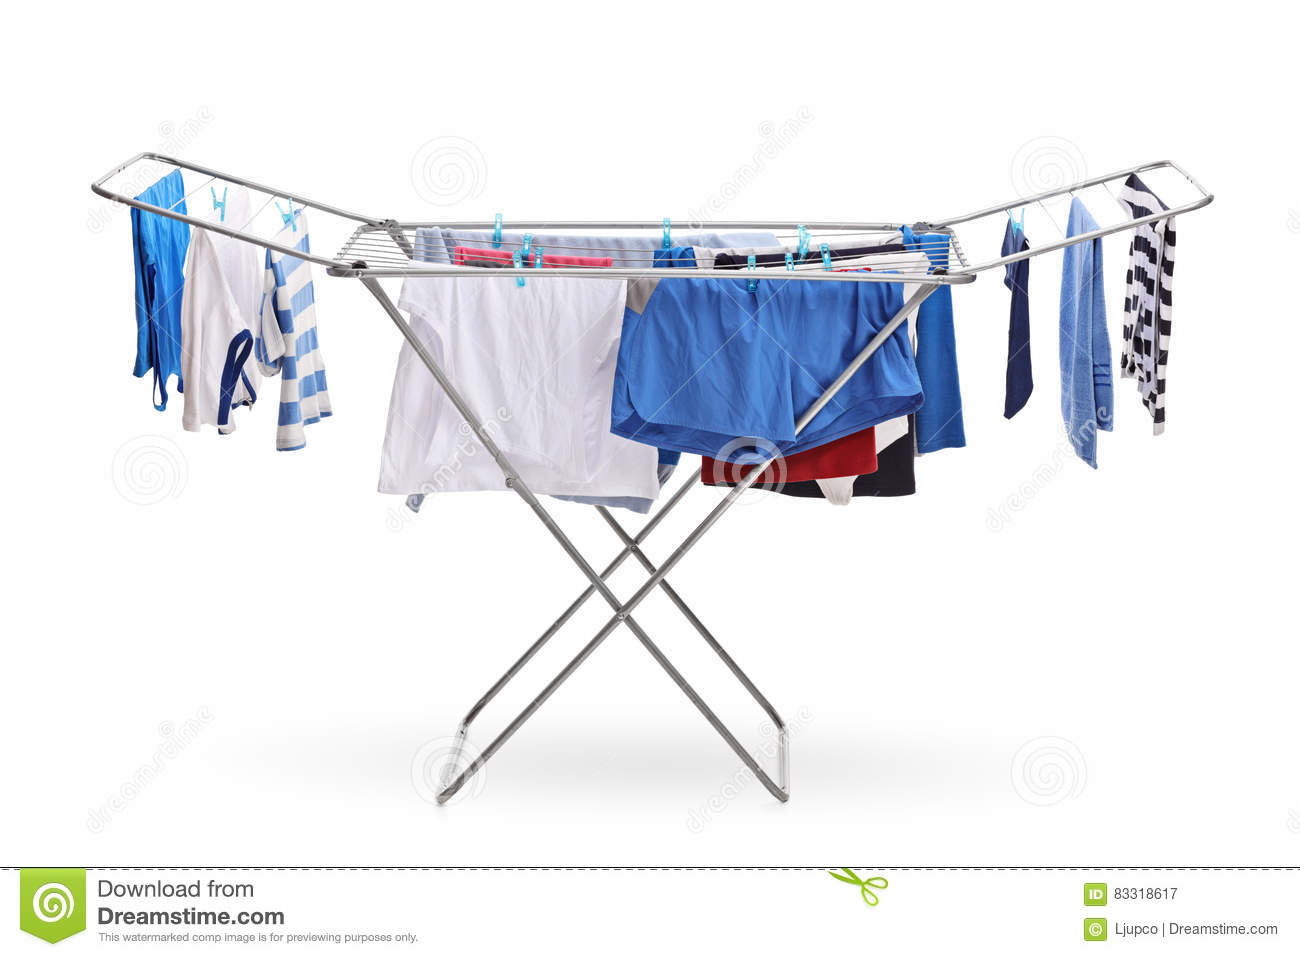 Rack dryer with clothes hanging